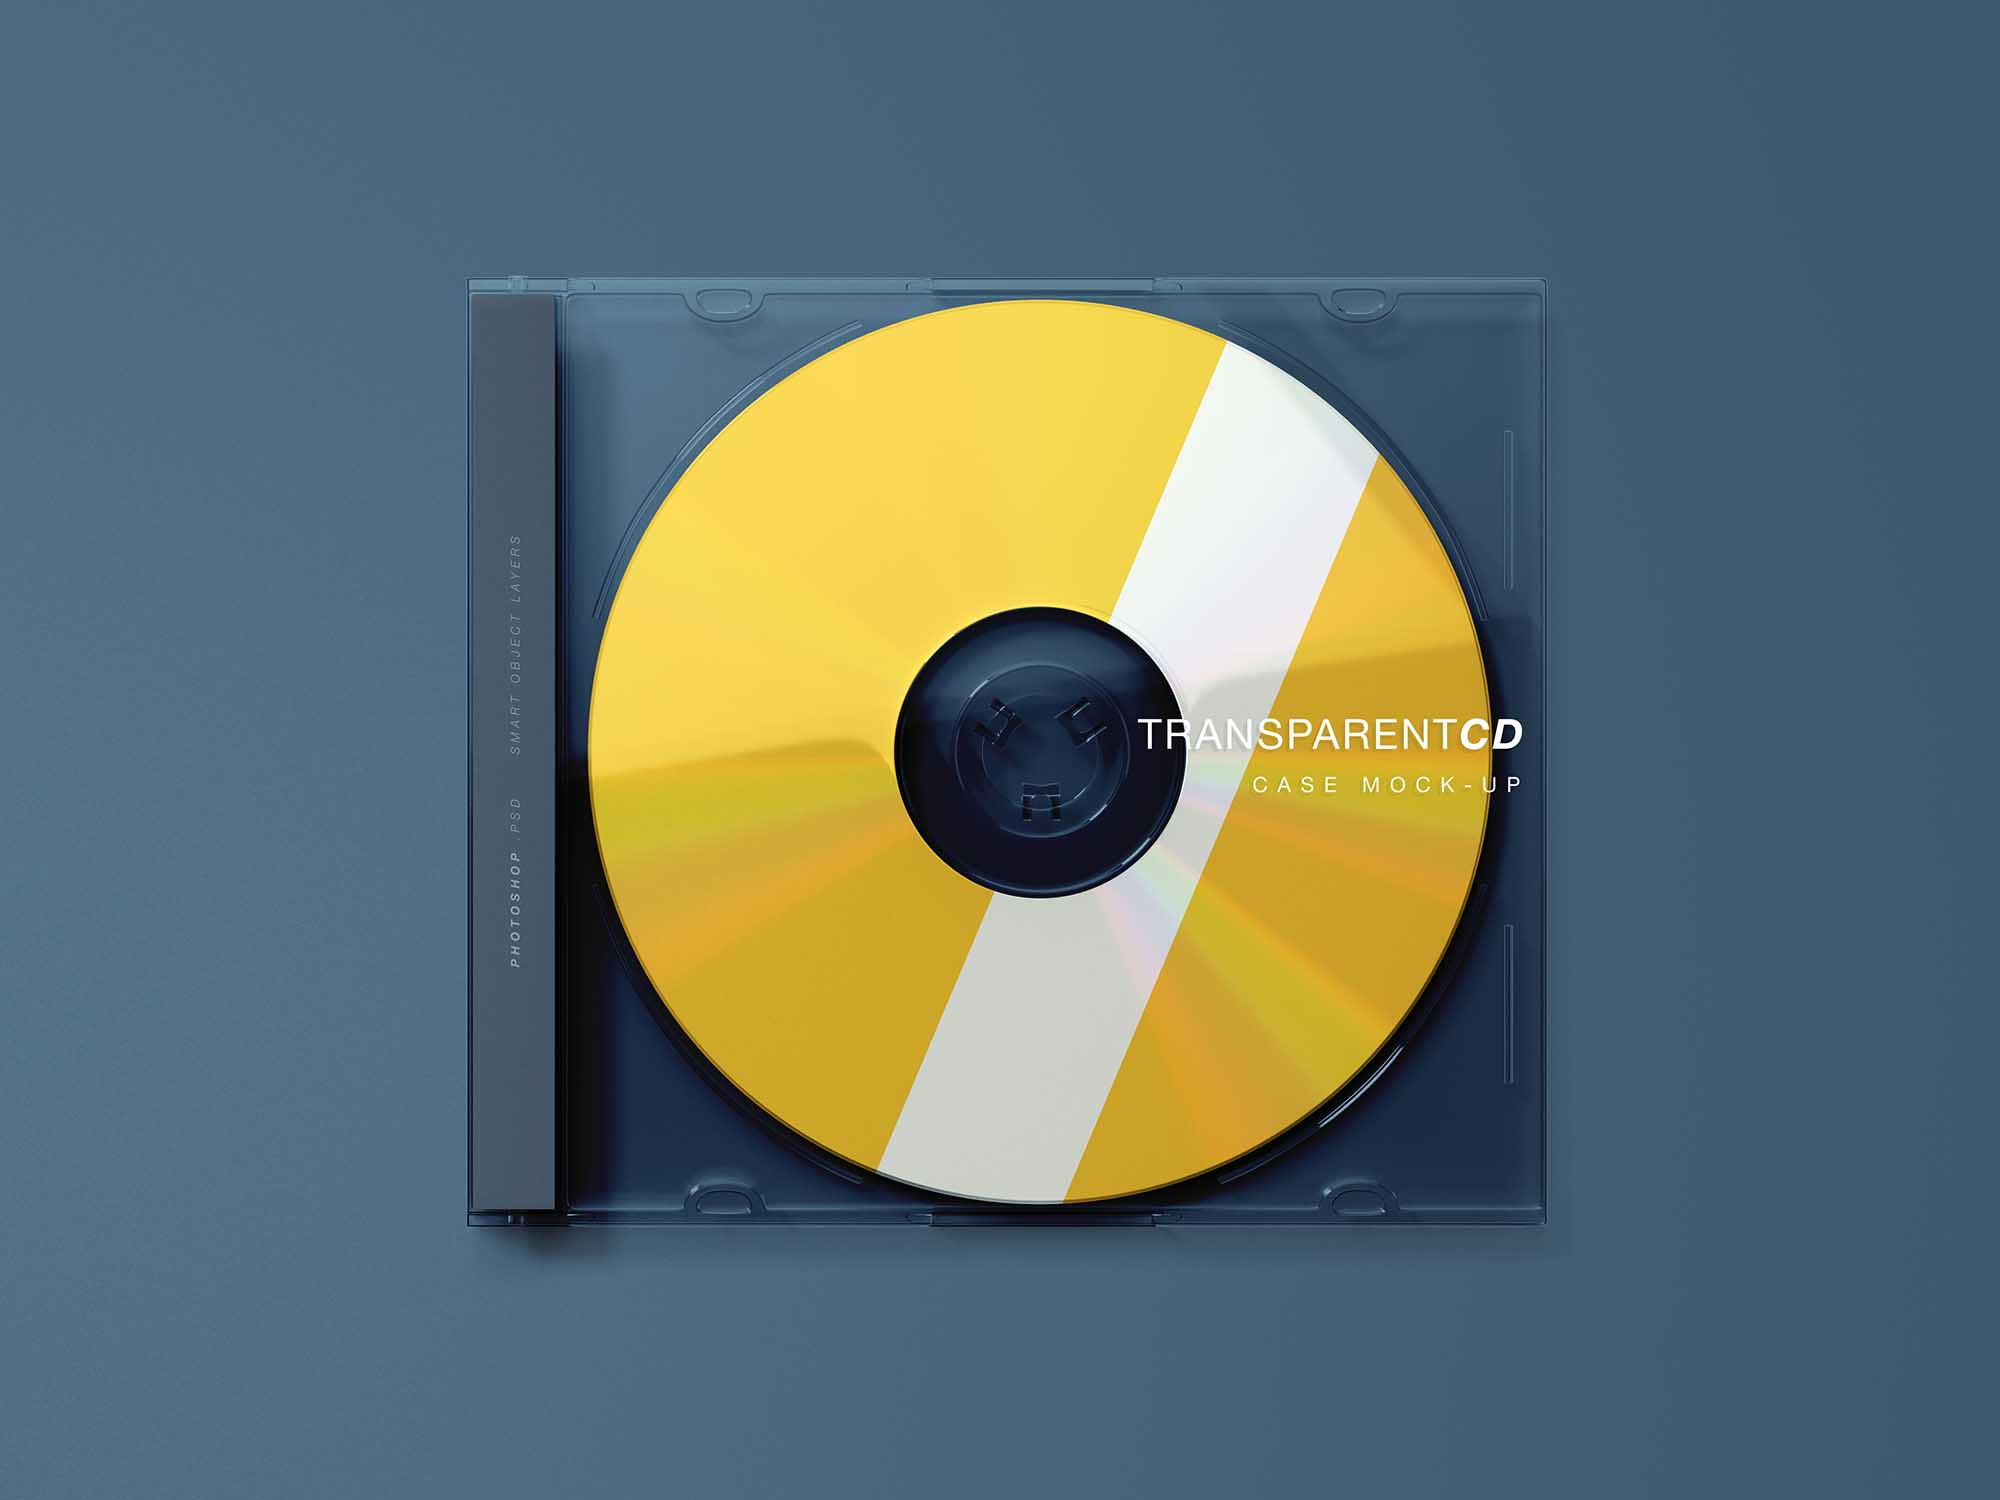 Transparent CD Case Mockup